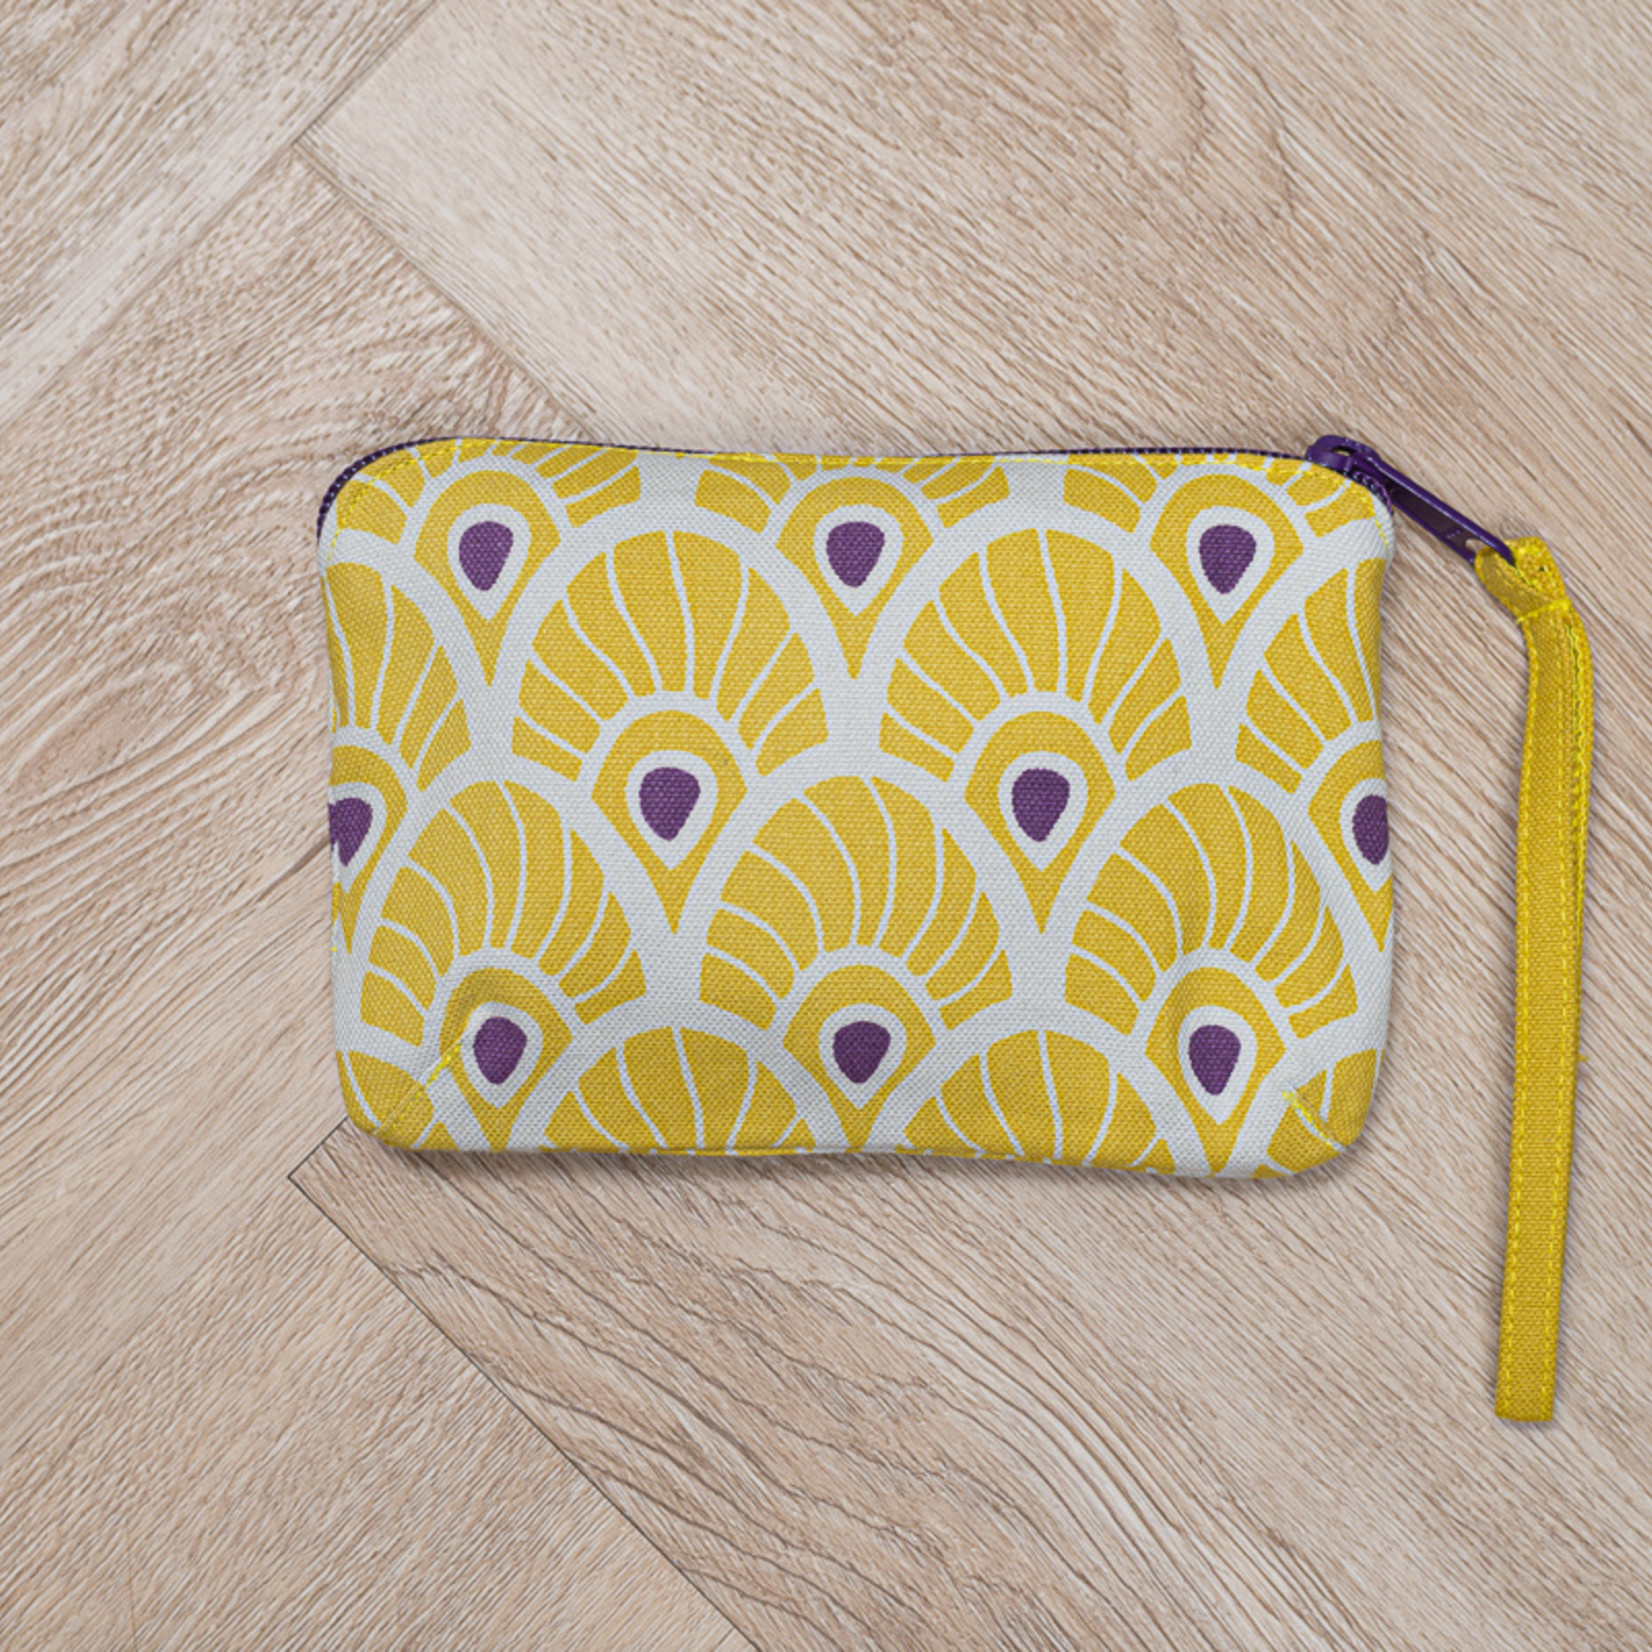 Tallentire House Tallentire House Feather Oil Yellow sustainable bag